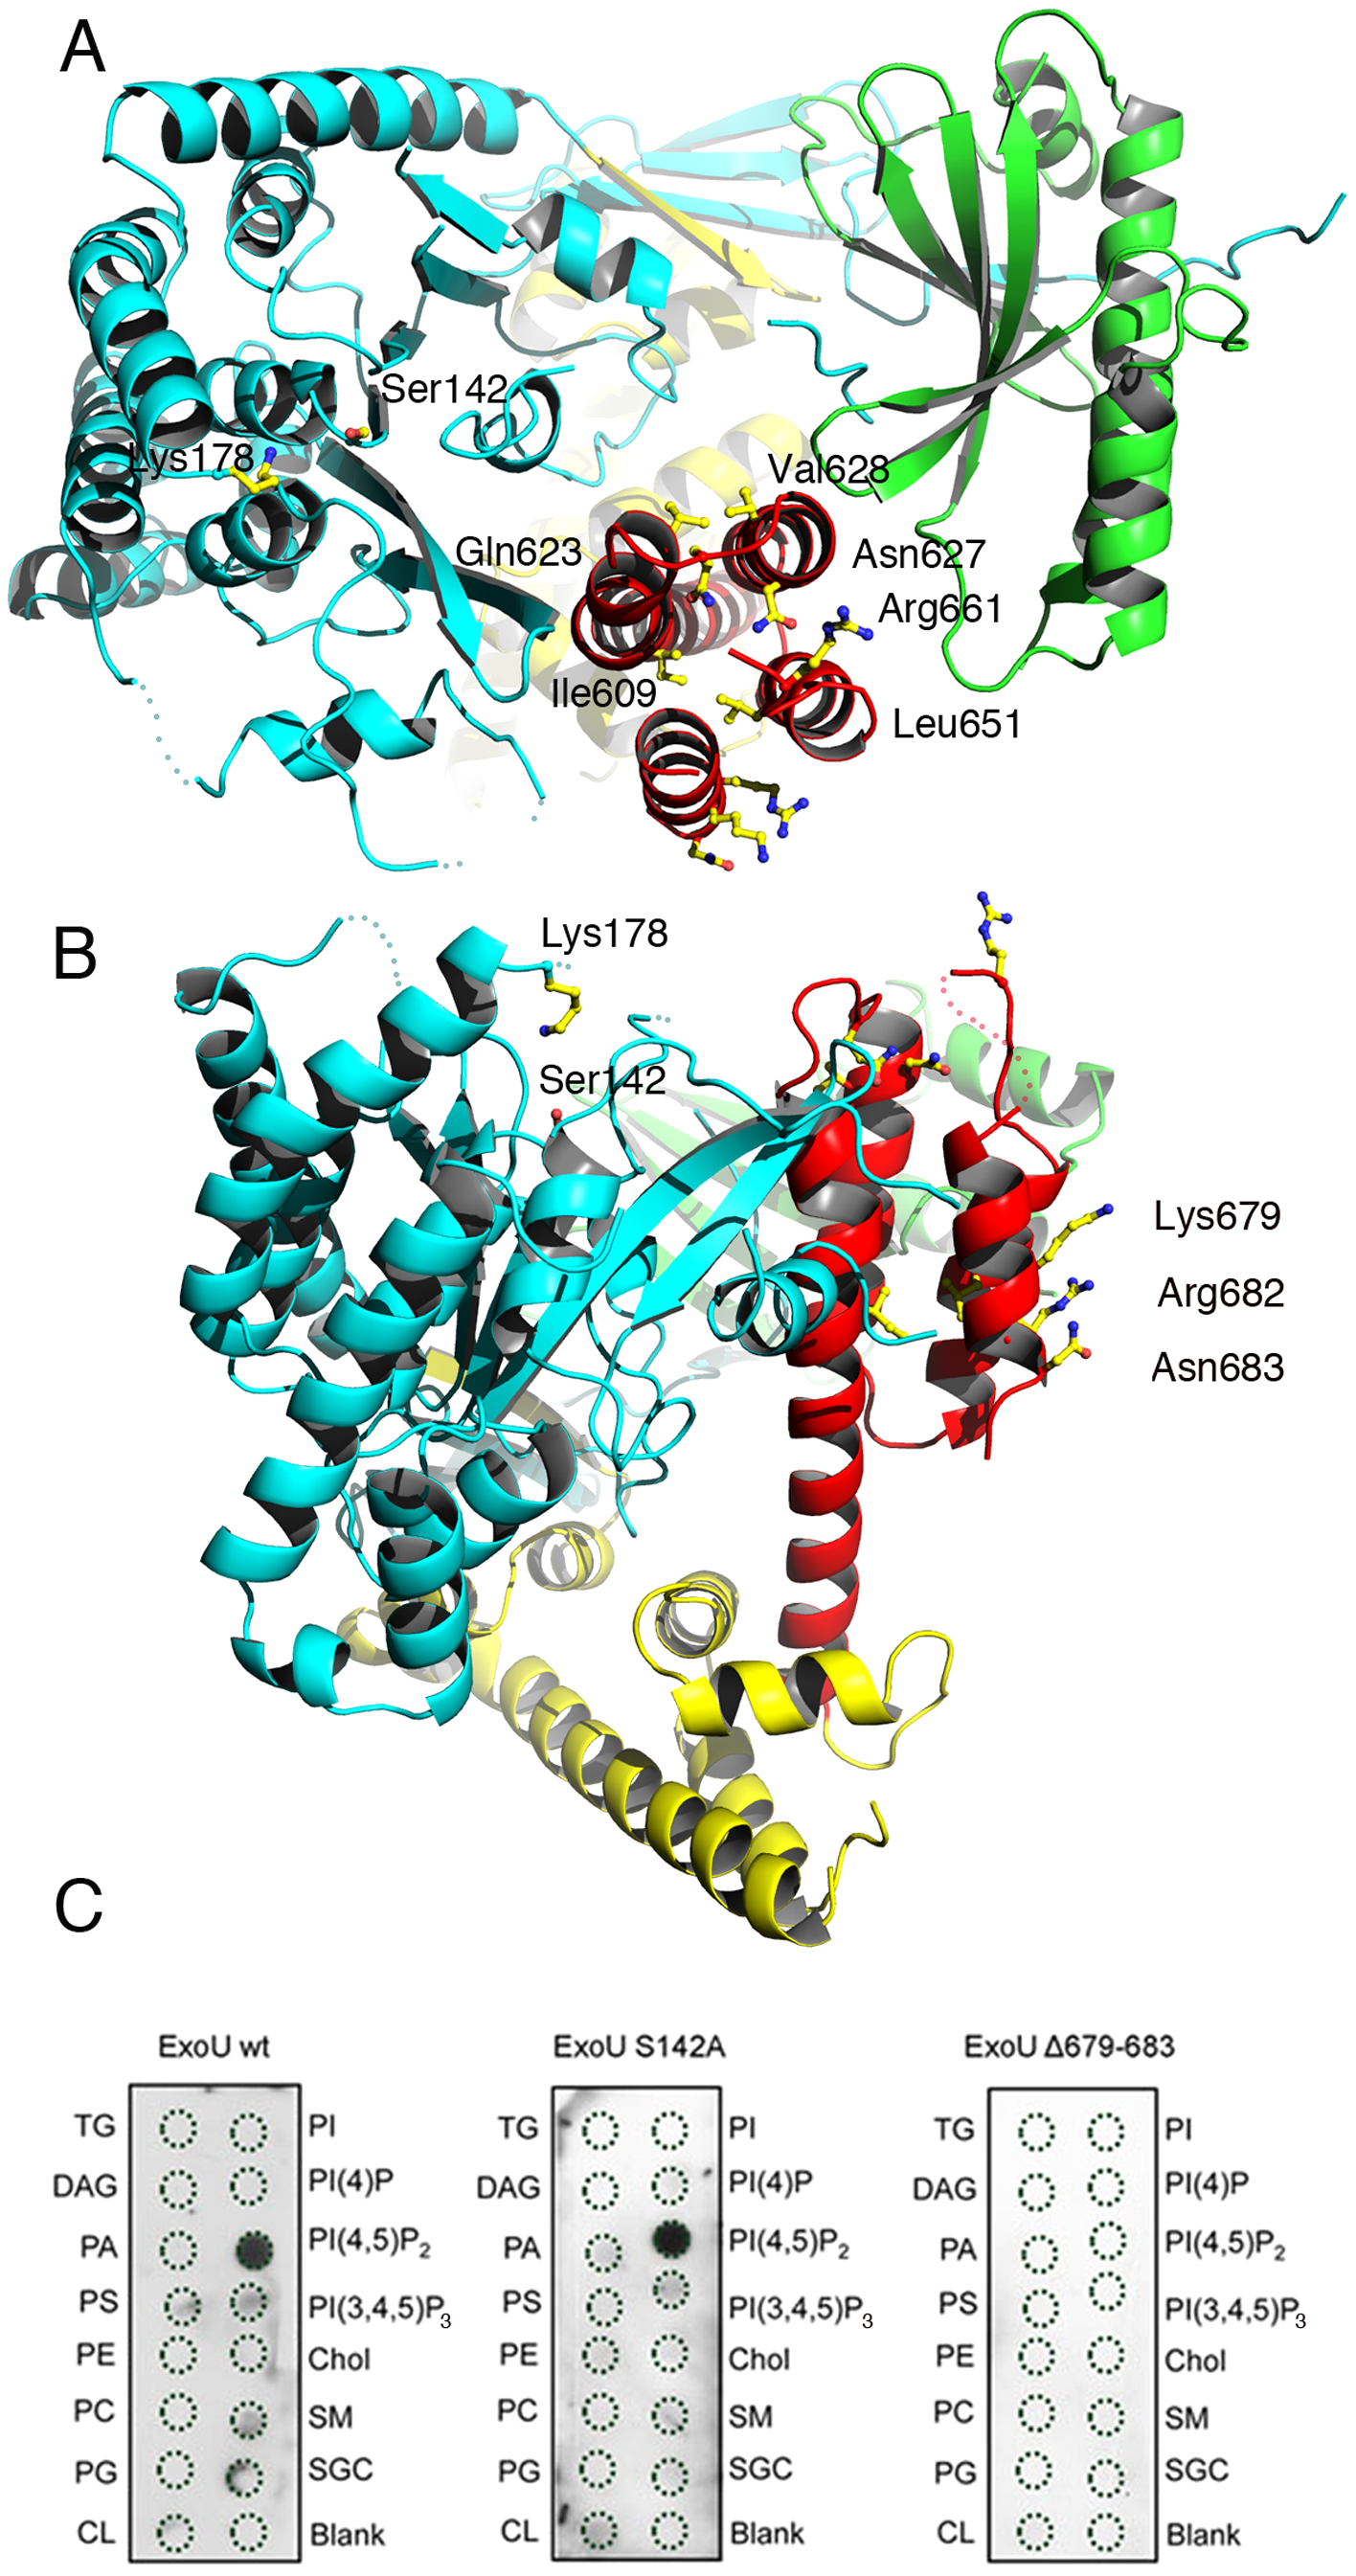 Membrane-binding, ubiquitination, and catalysis are structurally intertwined.